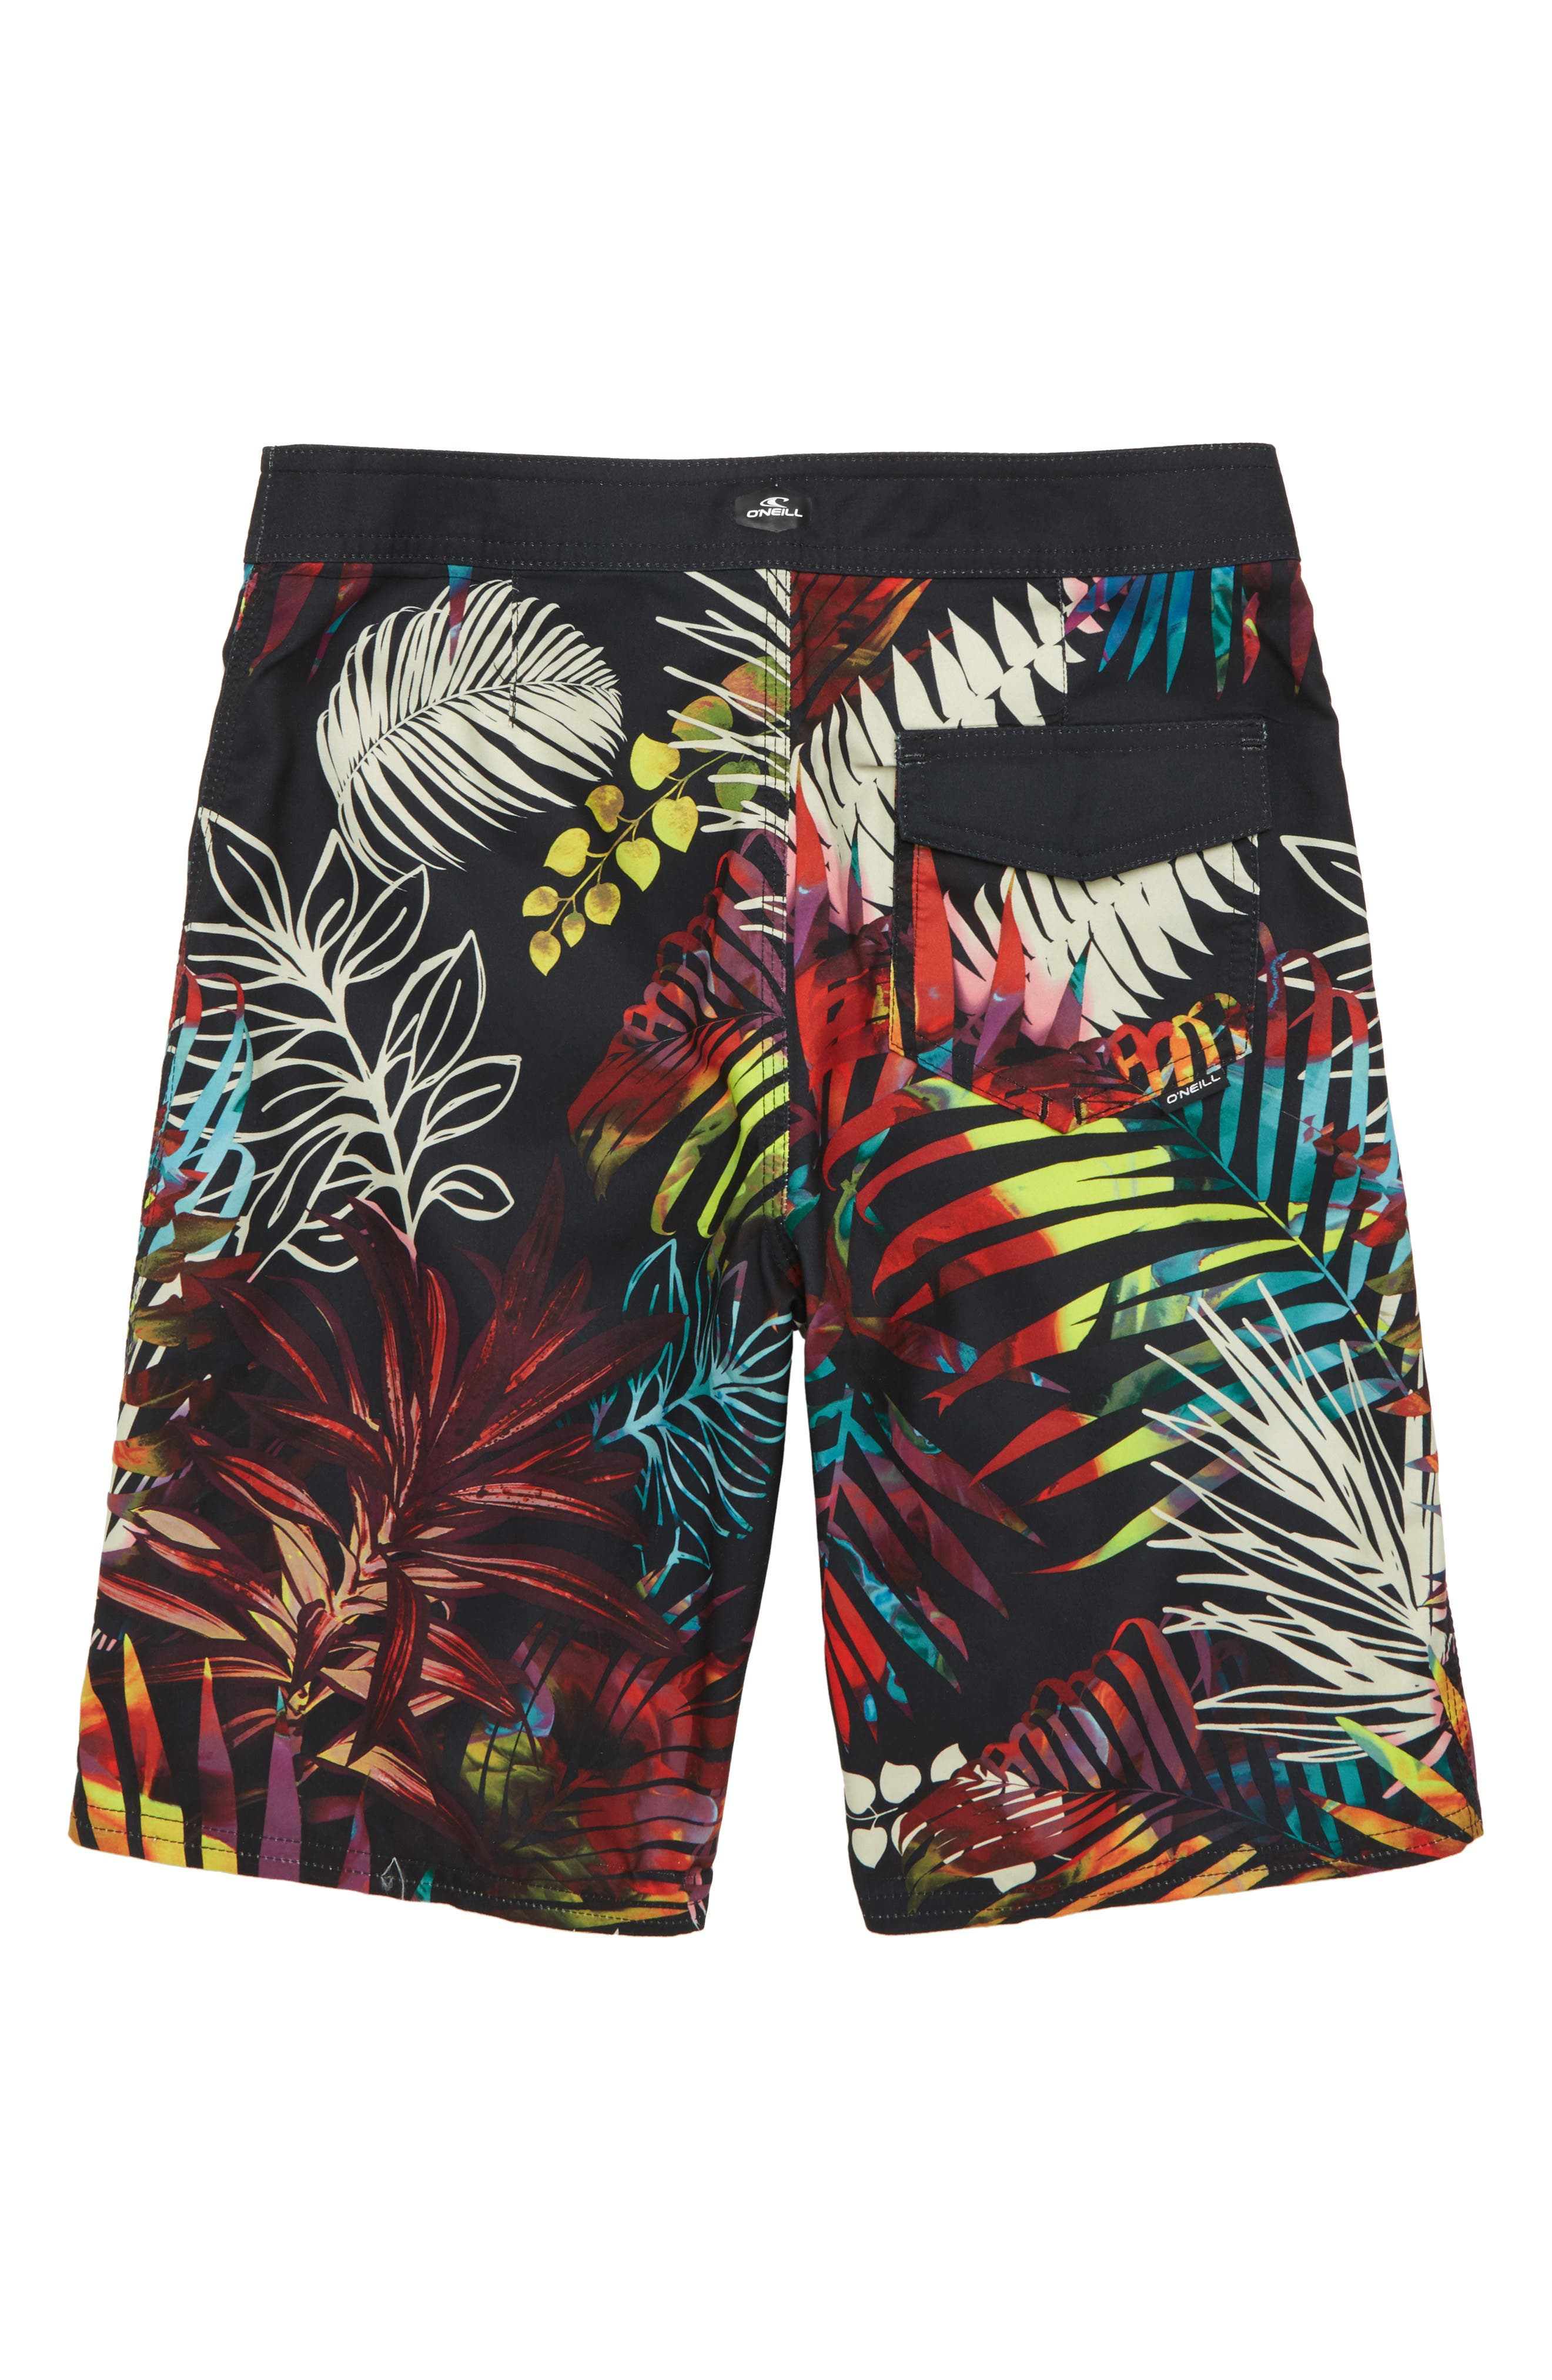 Mondaze Board Shorts,                             Alternate thumbnail 2, color,                             020